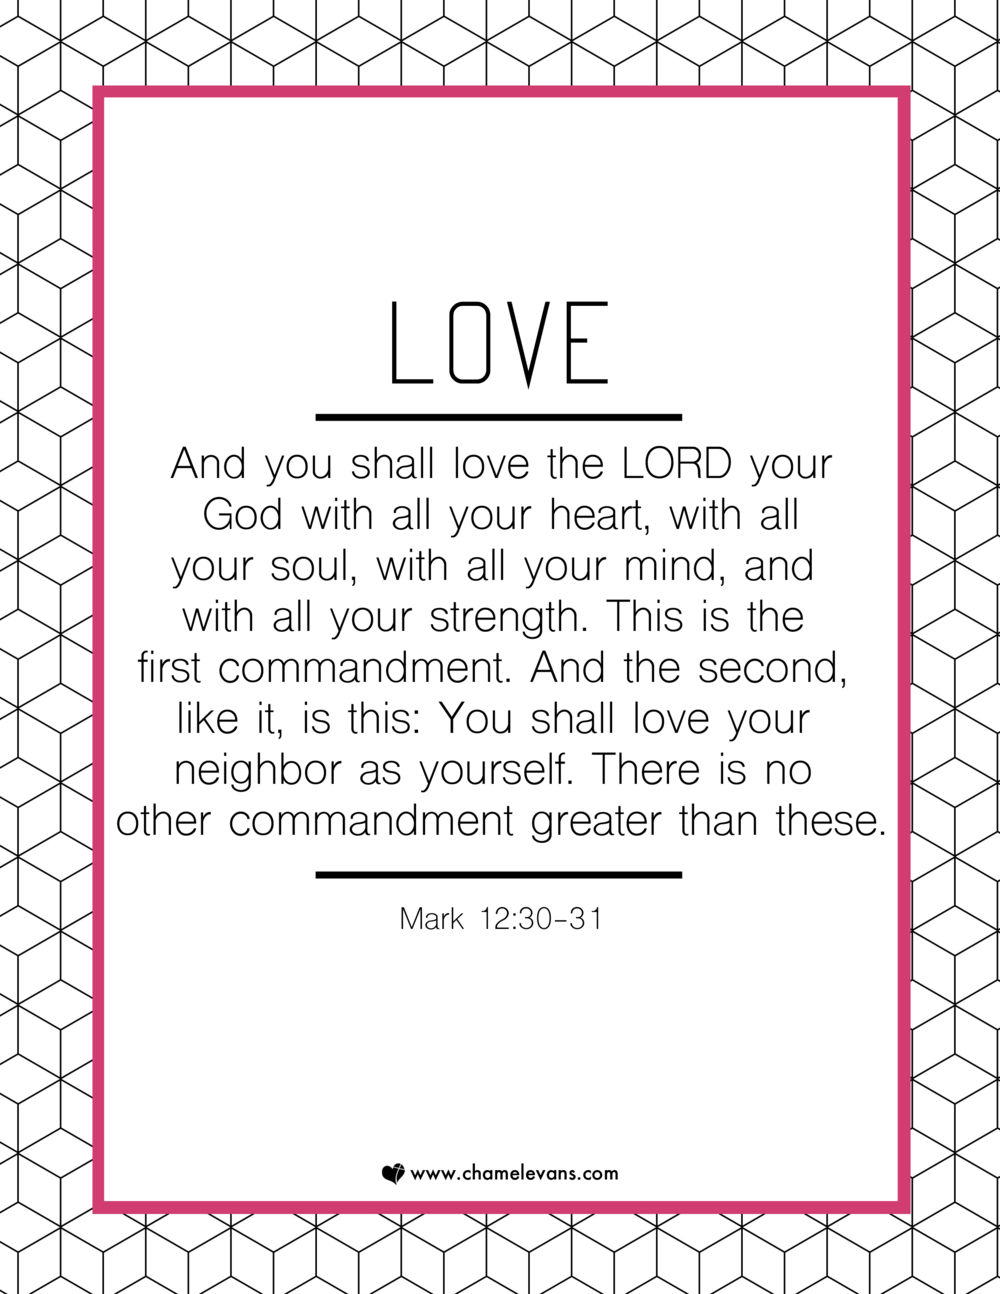 FREE SCRIPTURE ART PRINTABLES - love   - STAND IN GOD'S TRUTH | WWW.CHAMELEVANS.COM